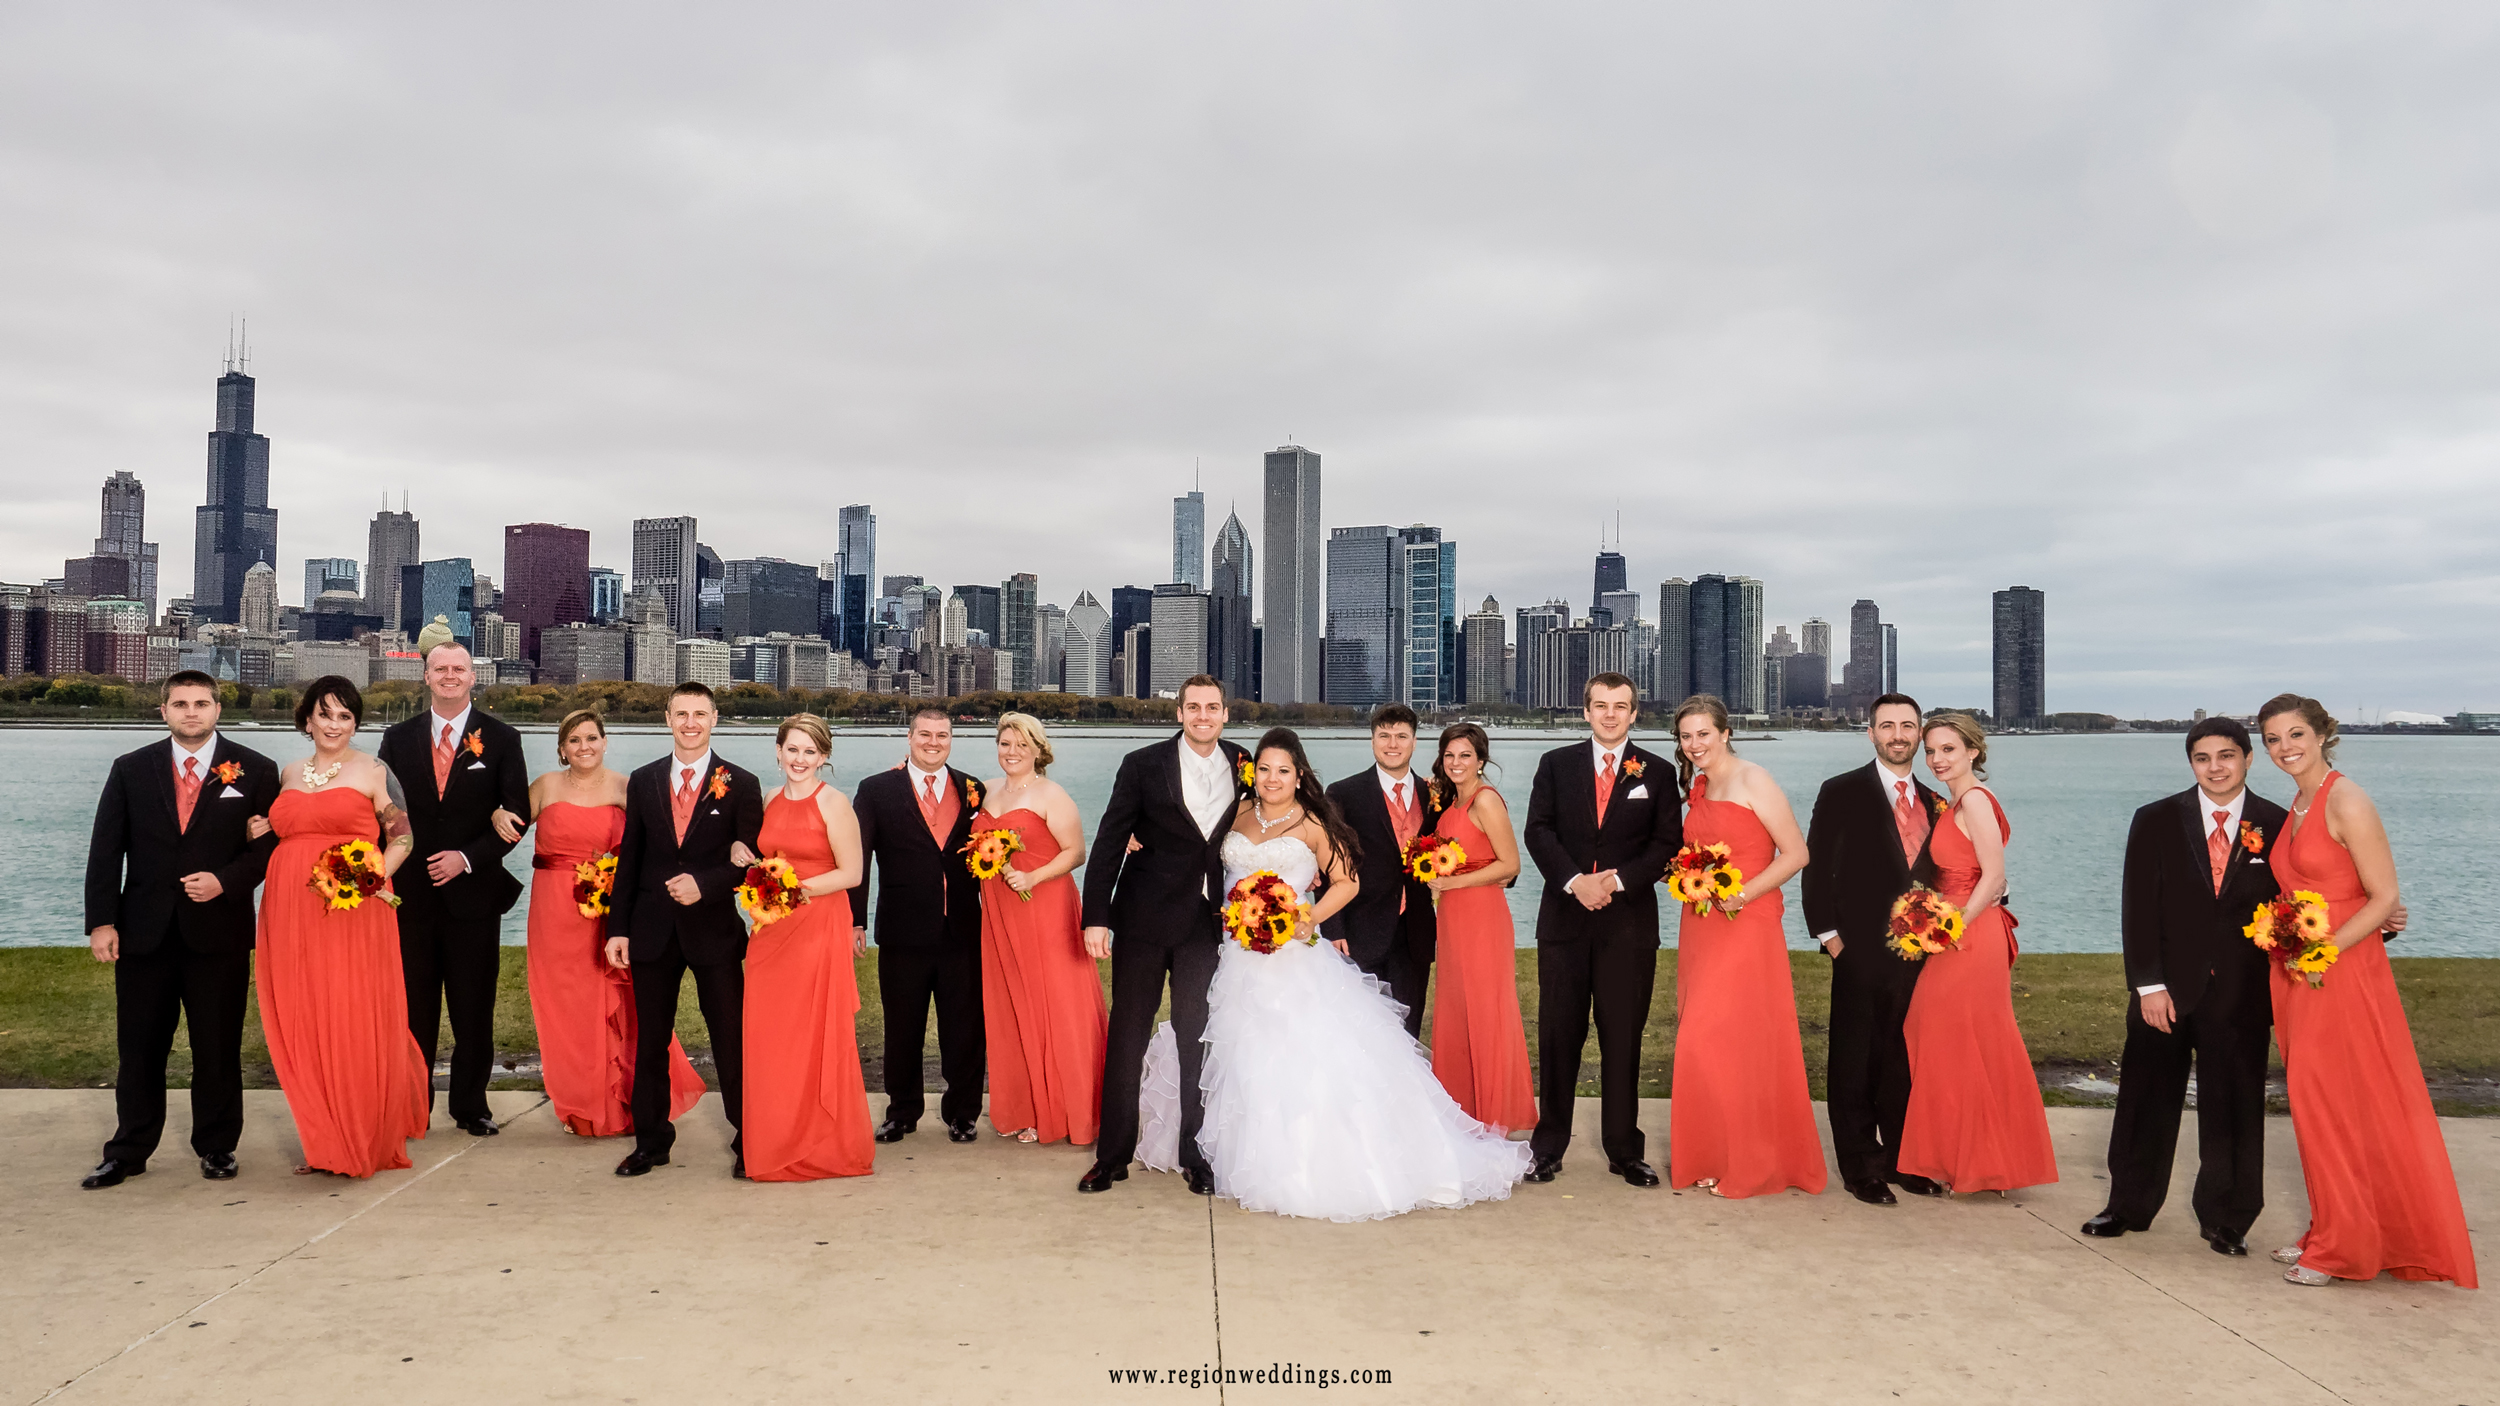 Wedding party group photo at Adler Planetarium with the skyline of Chicago as a backdrop.